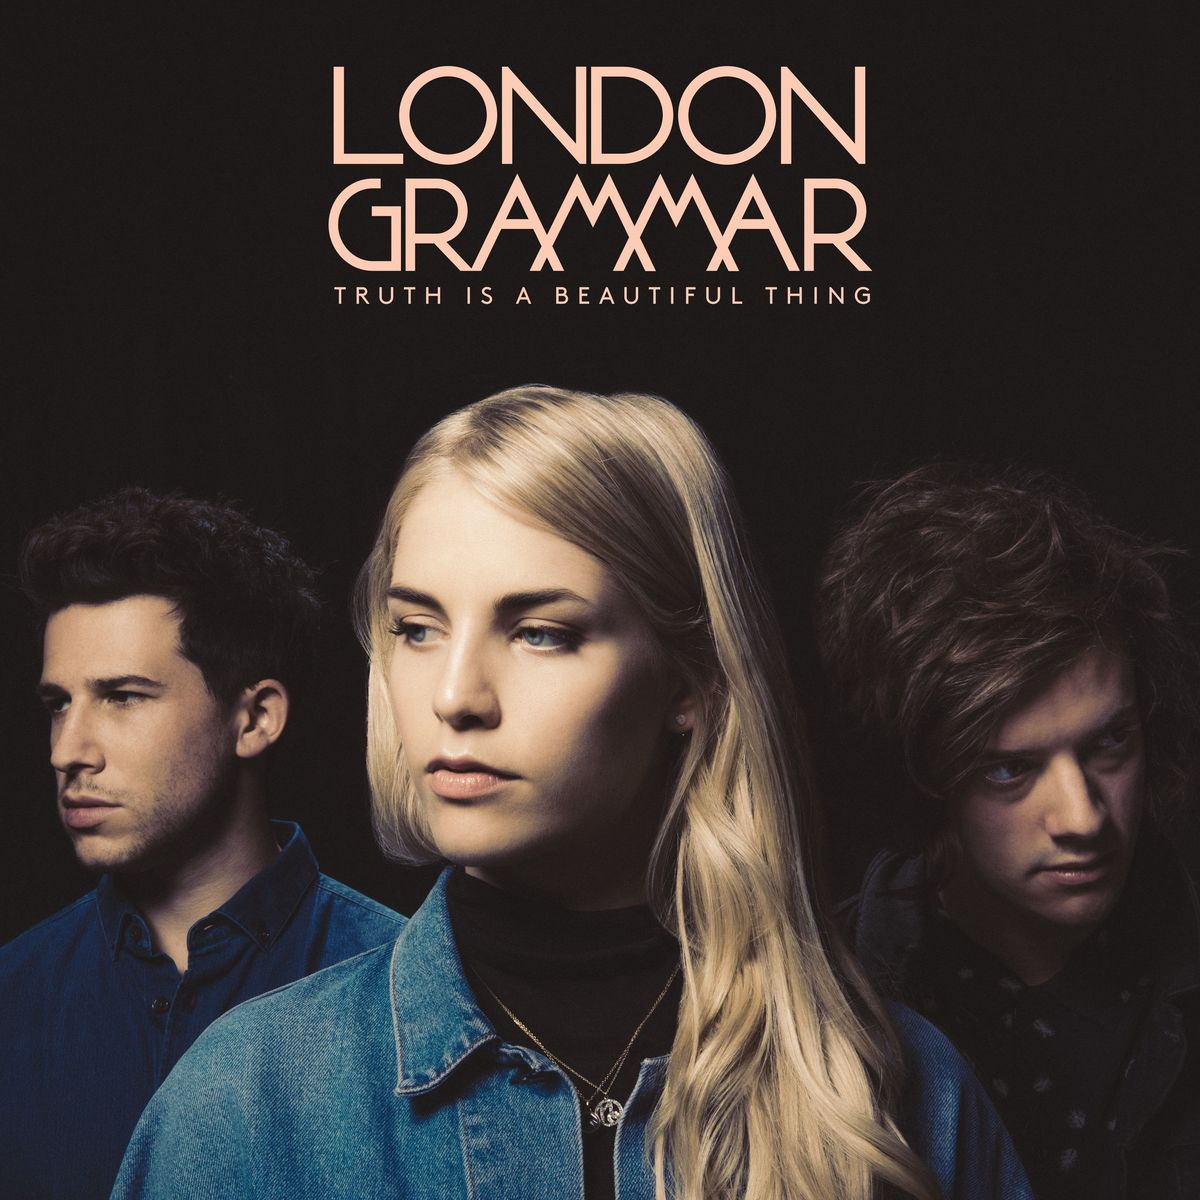 """London Grammar """"Truth Is a Beautiful Thing"""""""